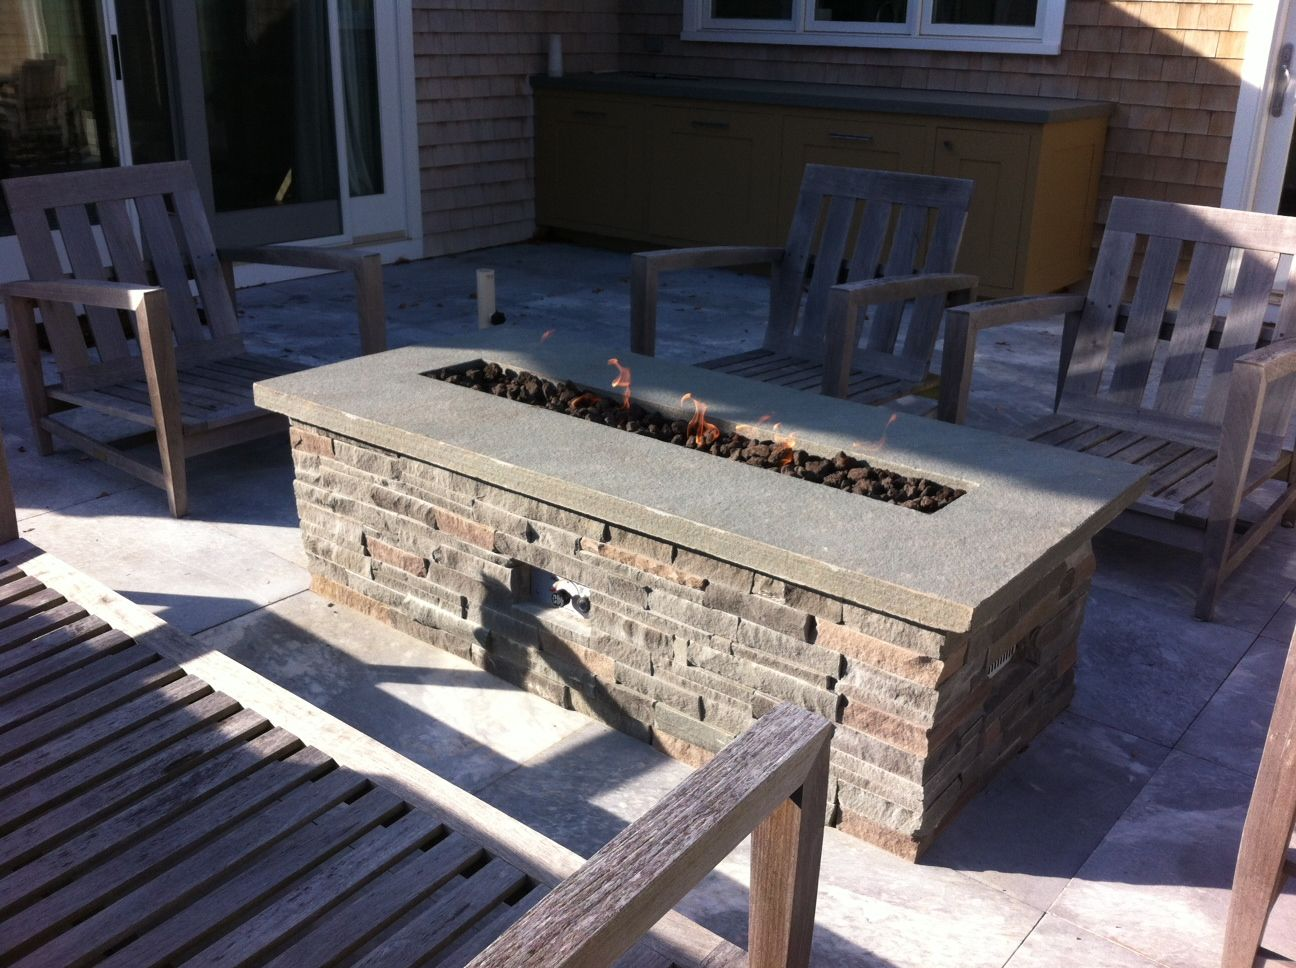 Diy Natural Gas Fire Pit Table Google Search Gas Fire Pit Table Natural Gas Fire Pit Diy Gas Fire Pit